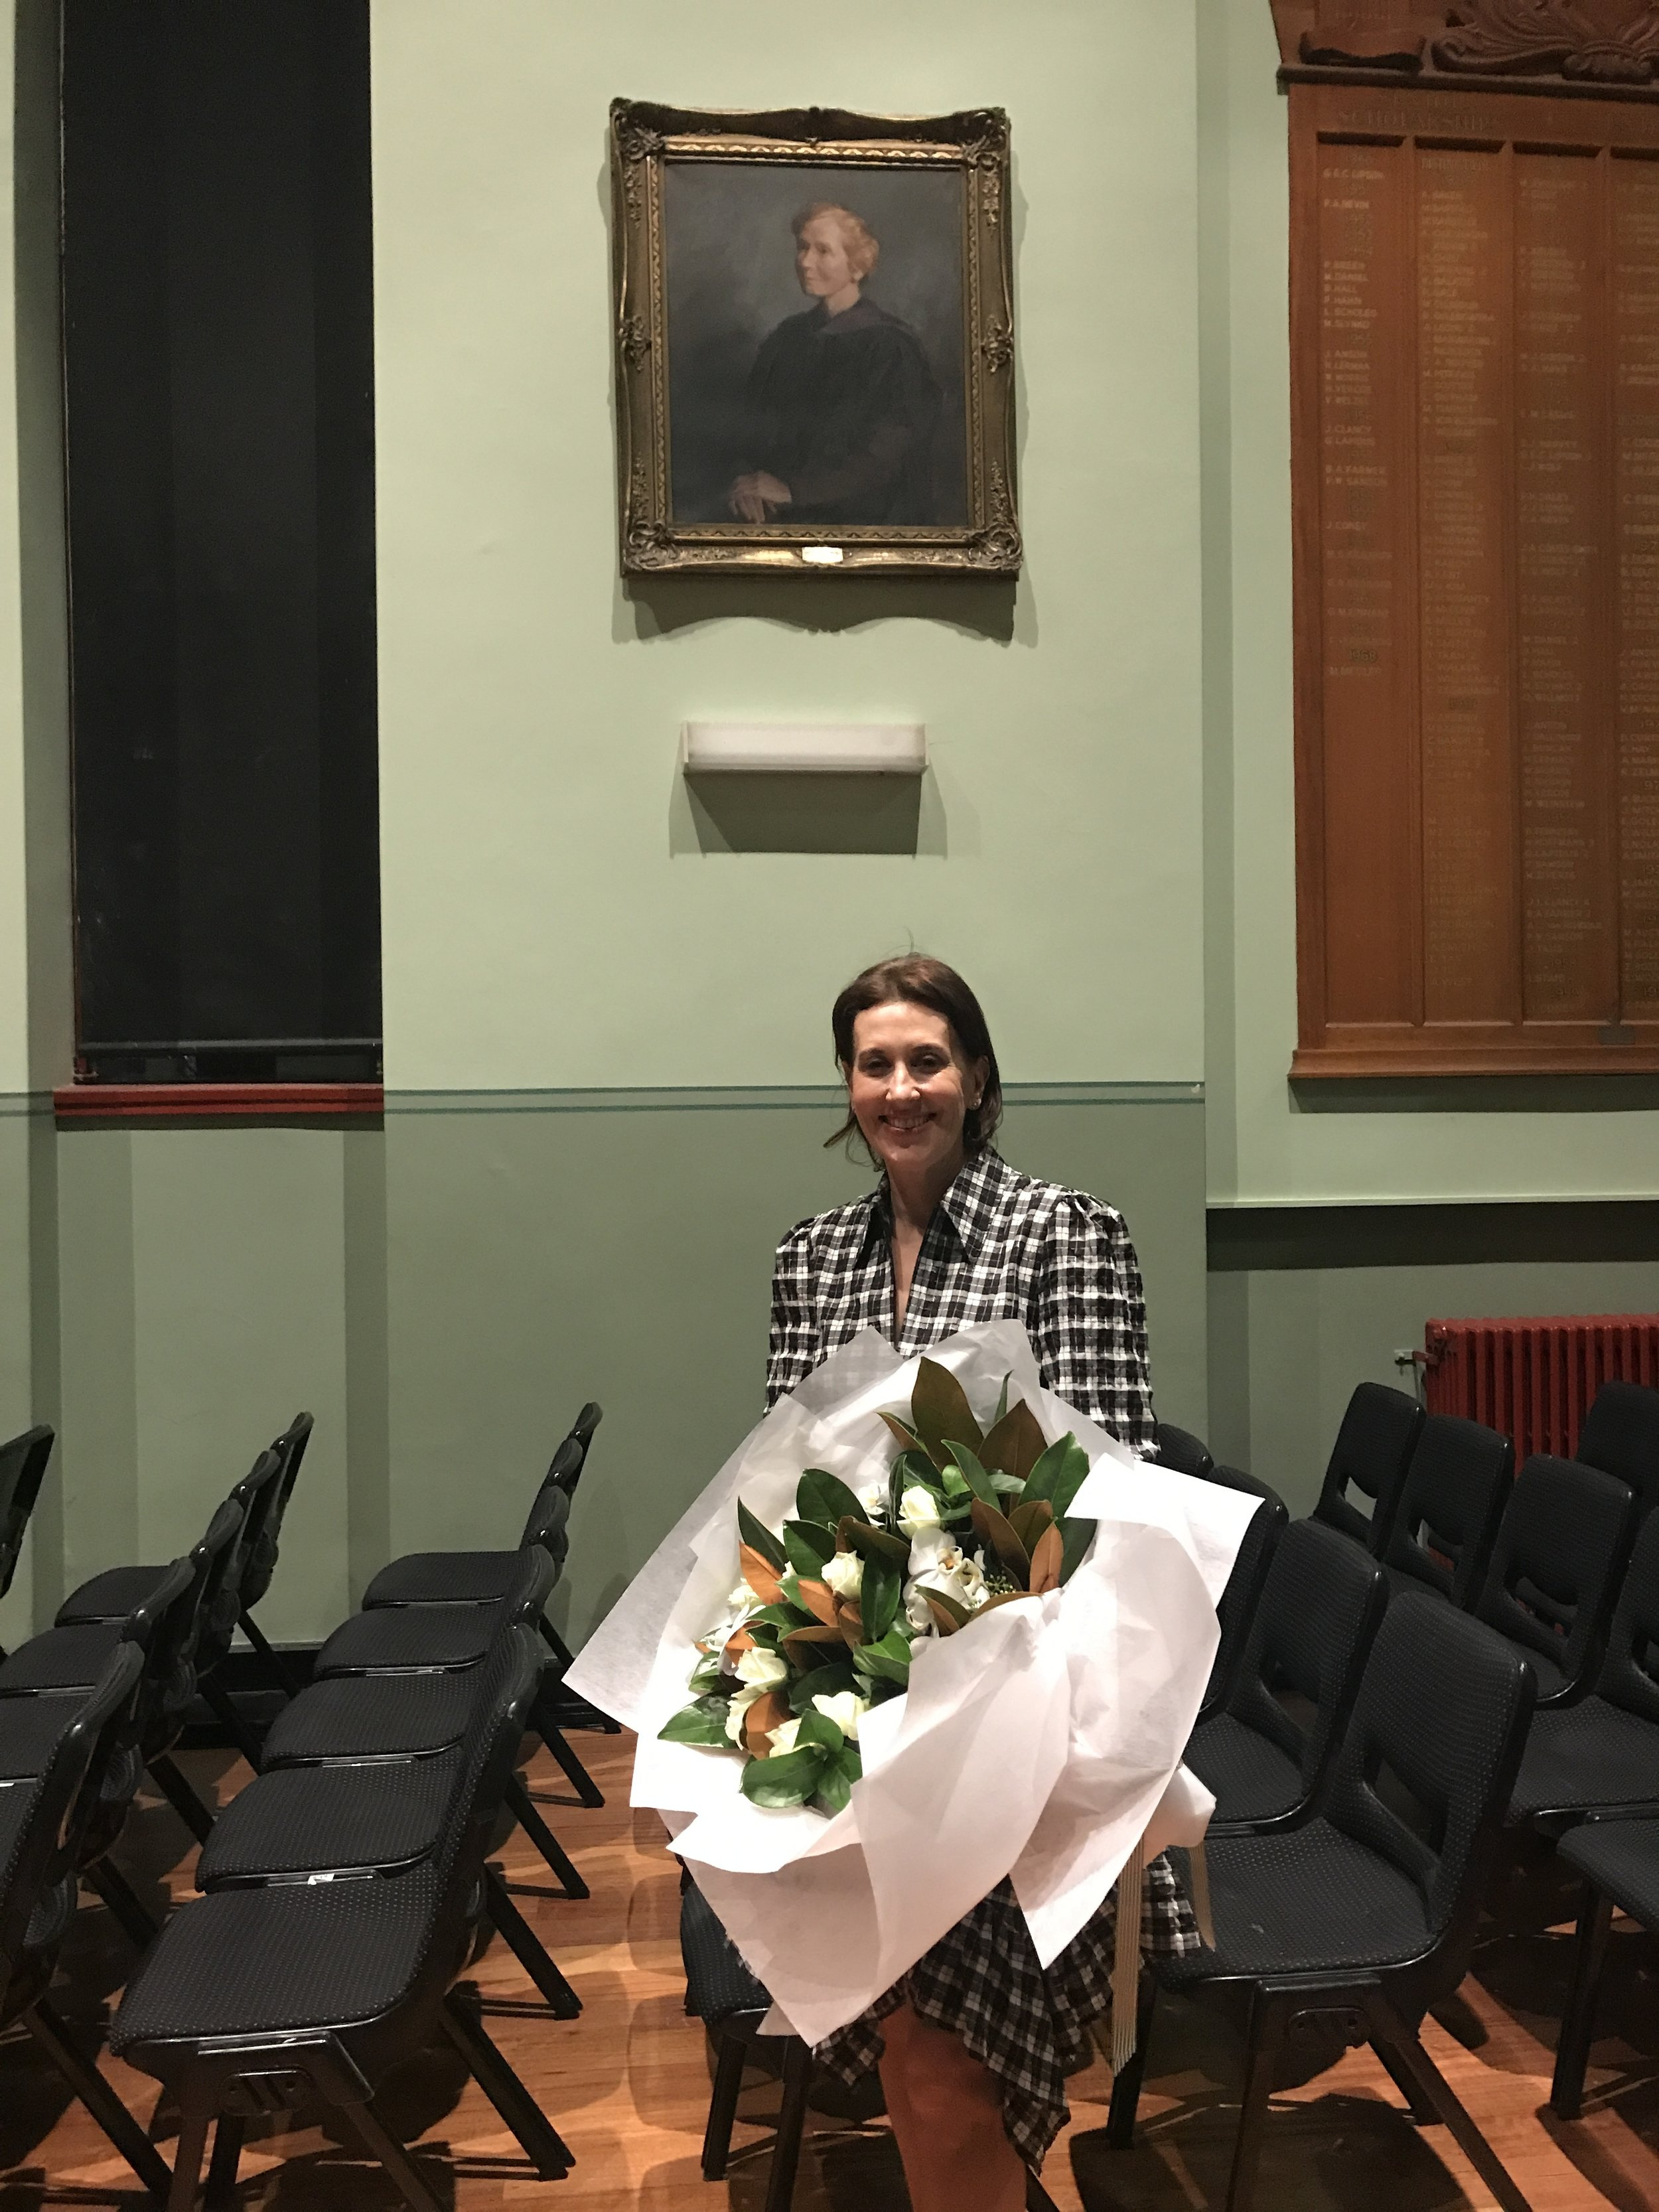 Virginia Trioli with the portrait of Christina Montgomery at the fourth annual Christina Montgomery Oration, 24 April 2019.